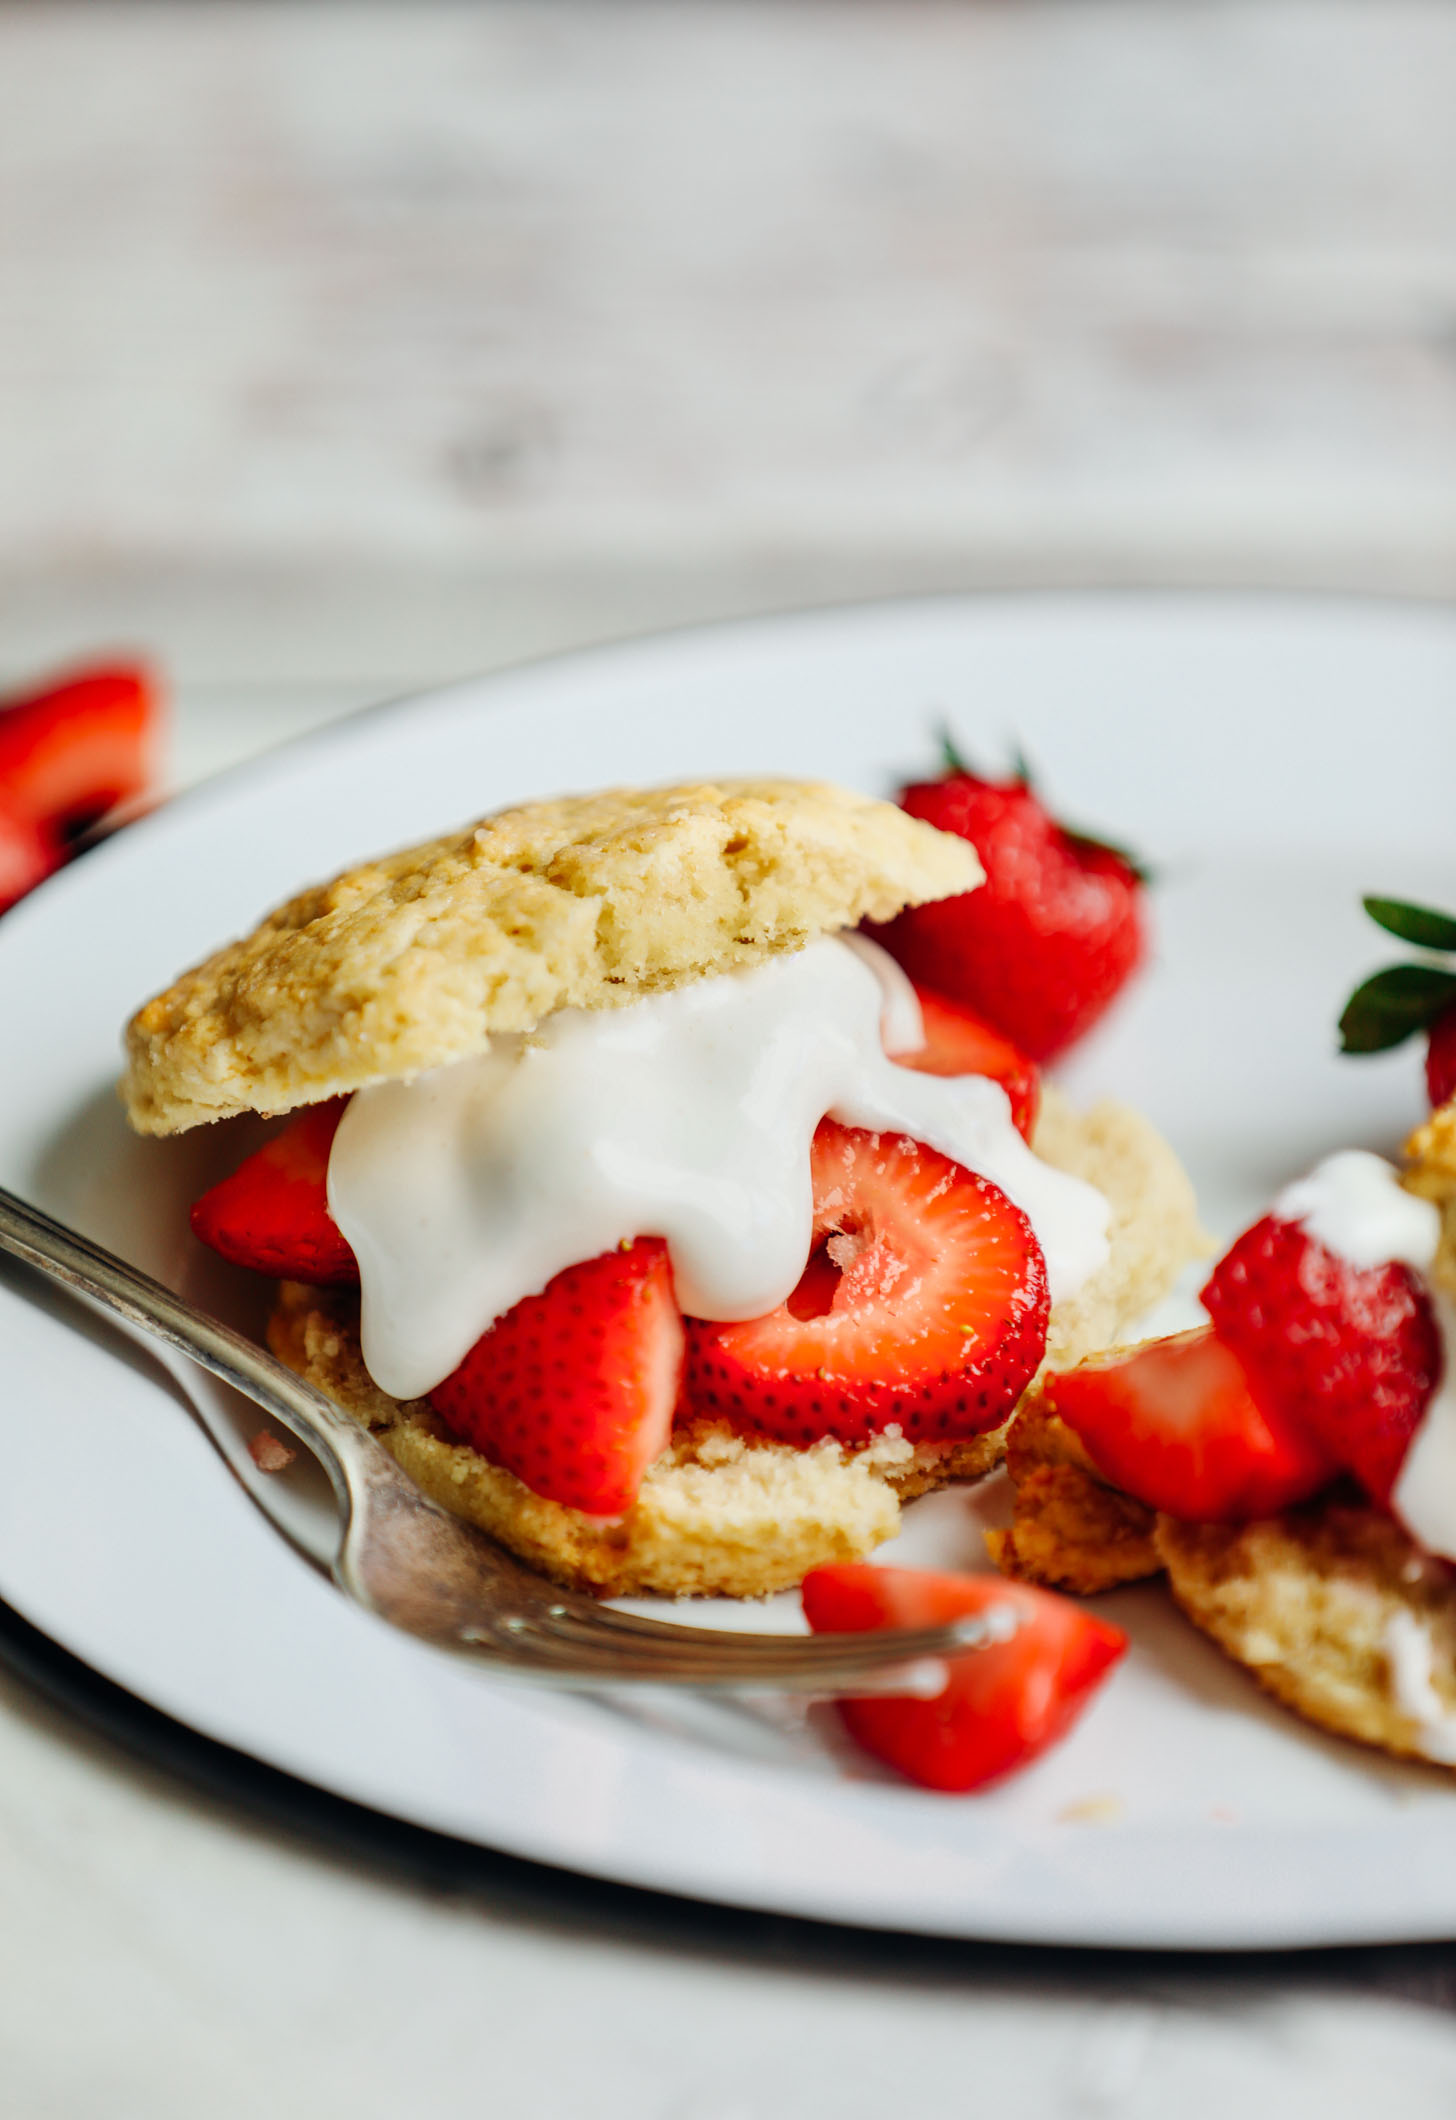 Plate with a vegan gluten-free shortcake biscuit with fresh strawberries and coconut whipped cream